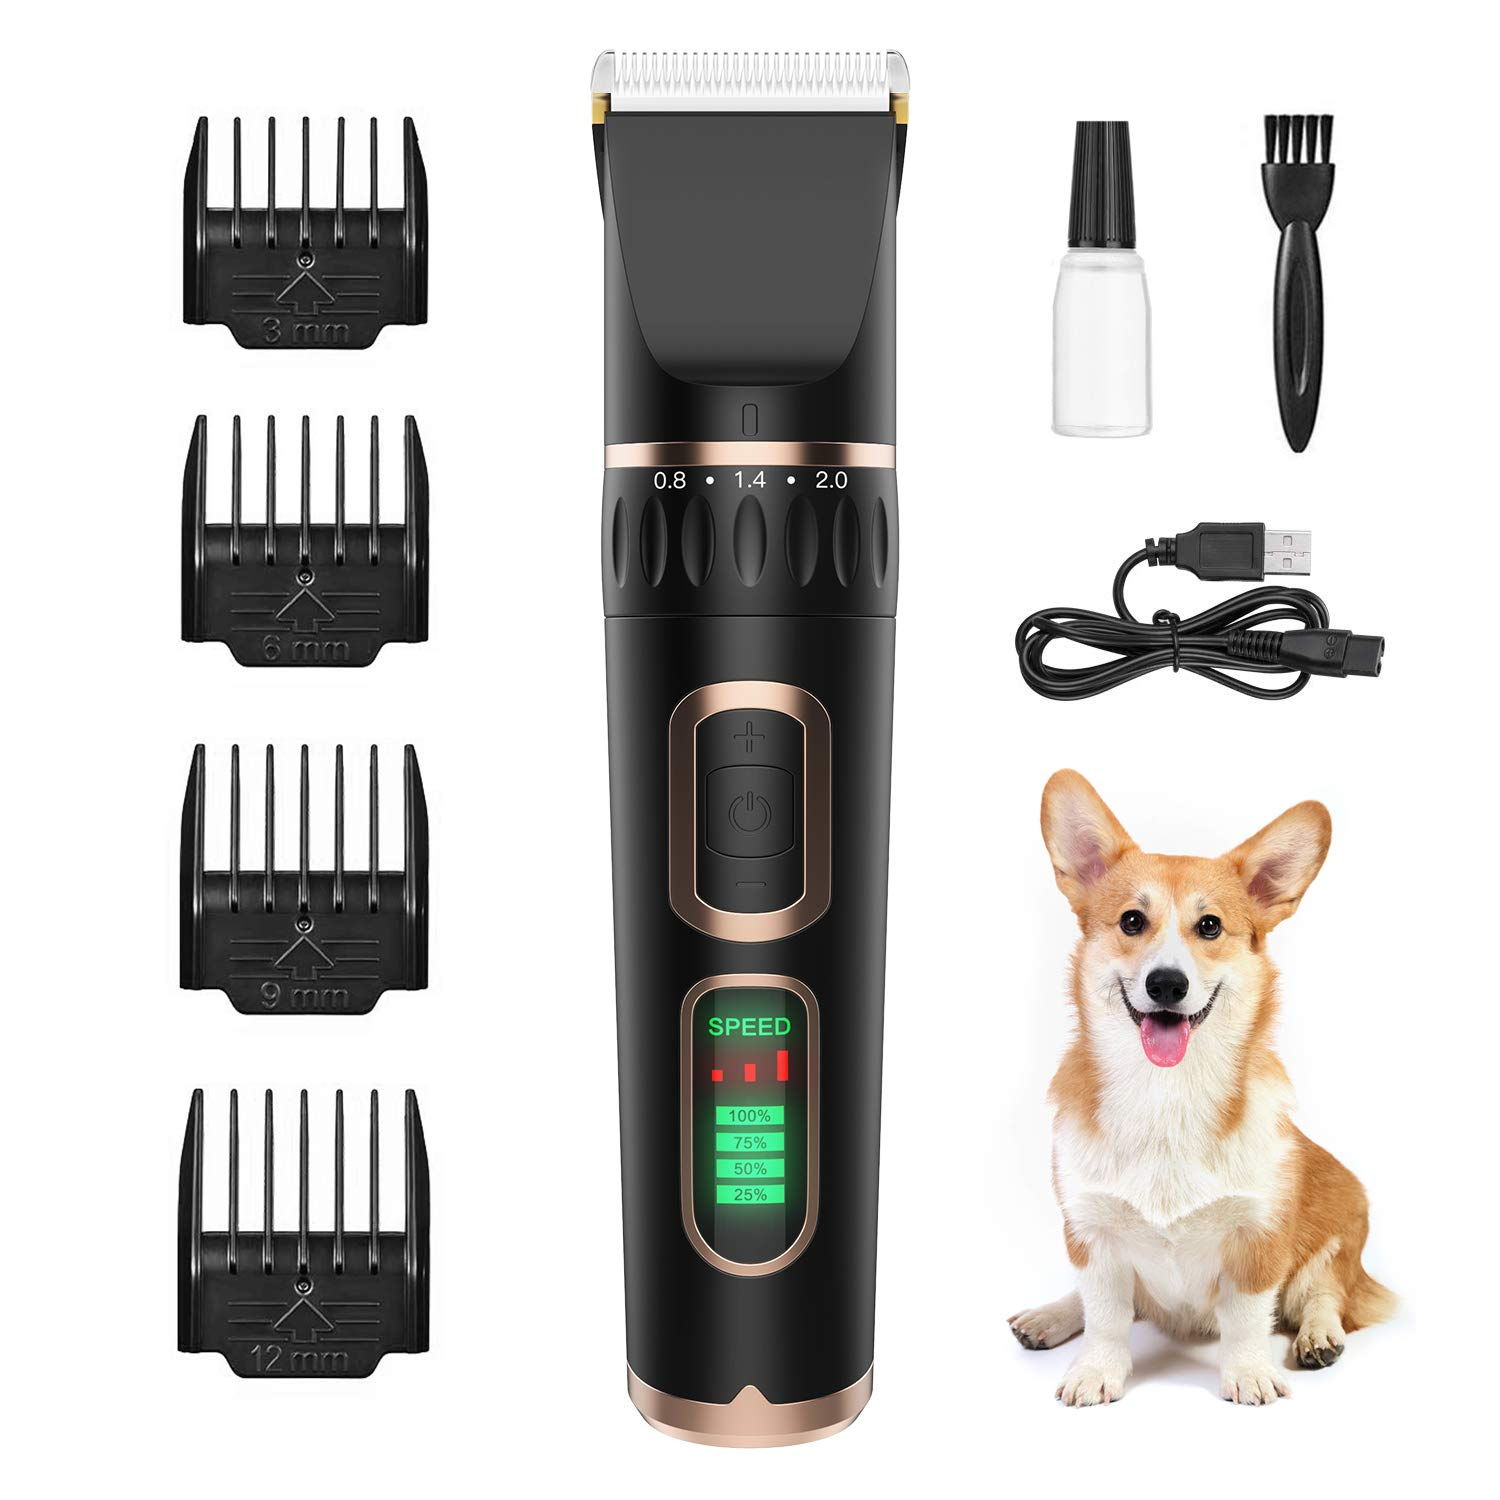 ZIIDII Dog Clippers,3 Speed Rechargeable Pet Grooming Kit with LED Display,Waterproof Blade Low Noise Hair Trimmer Clipper for Dogs Cats and Other Pets by ZIIDII